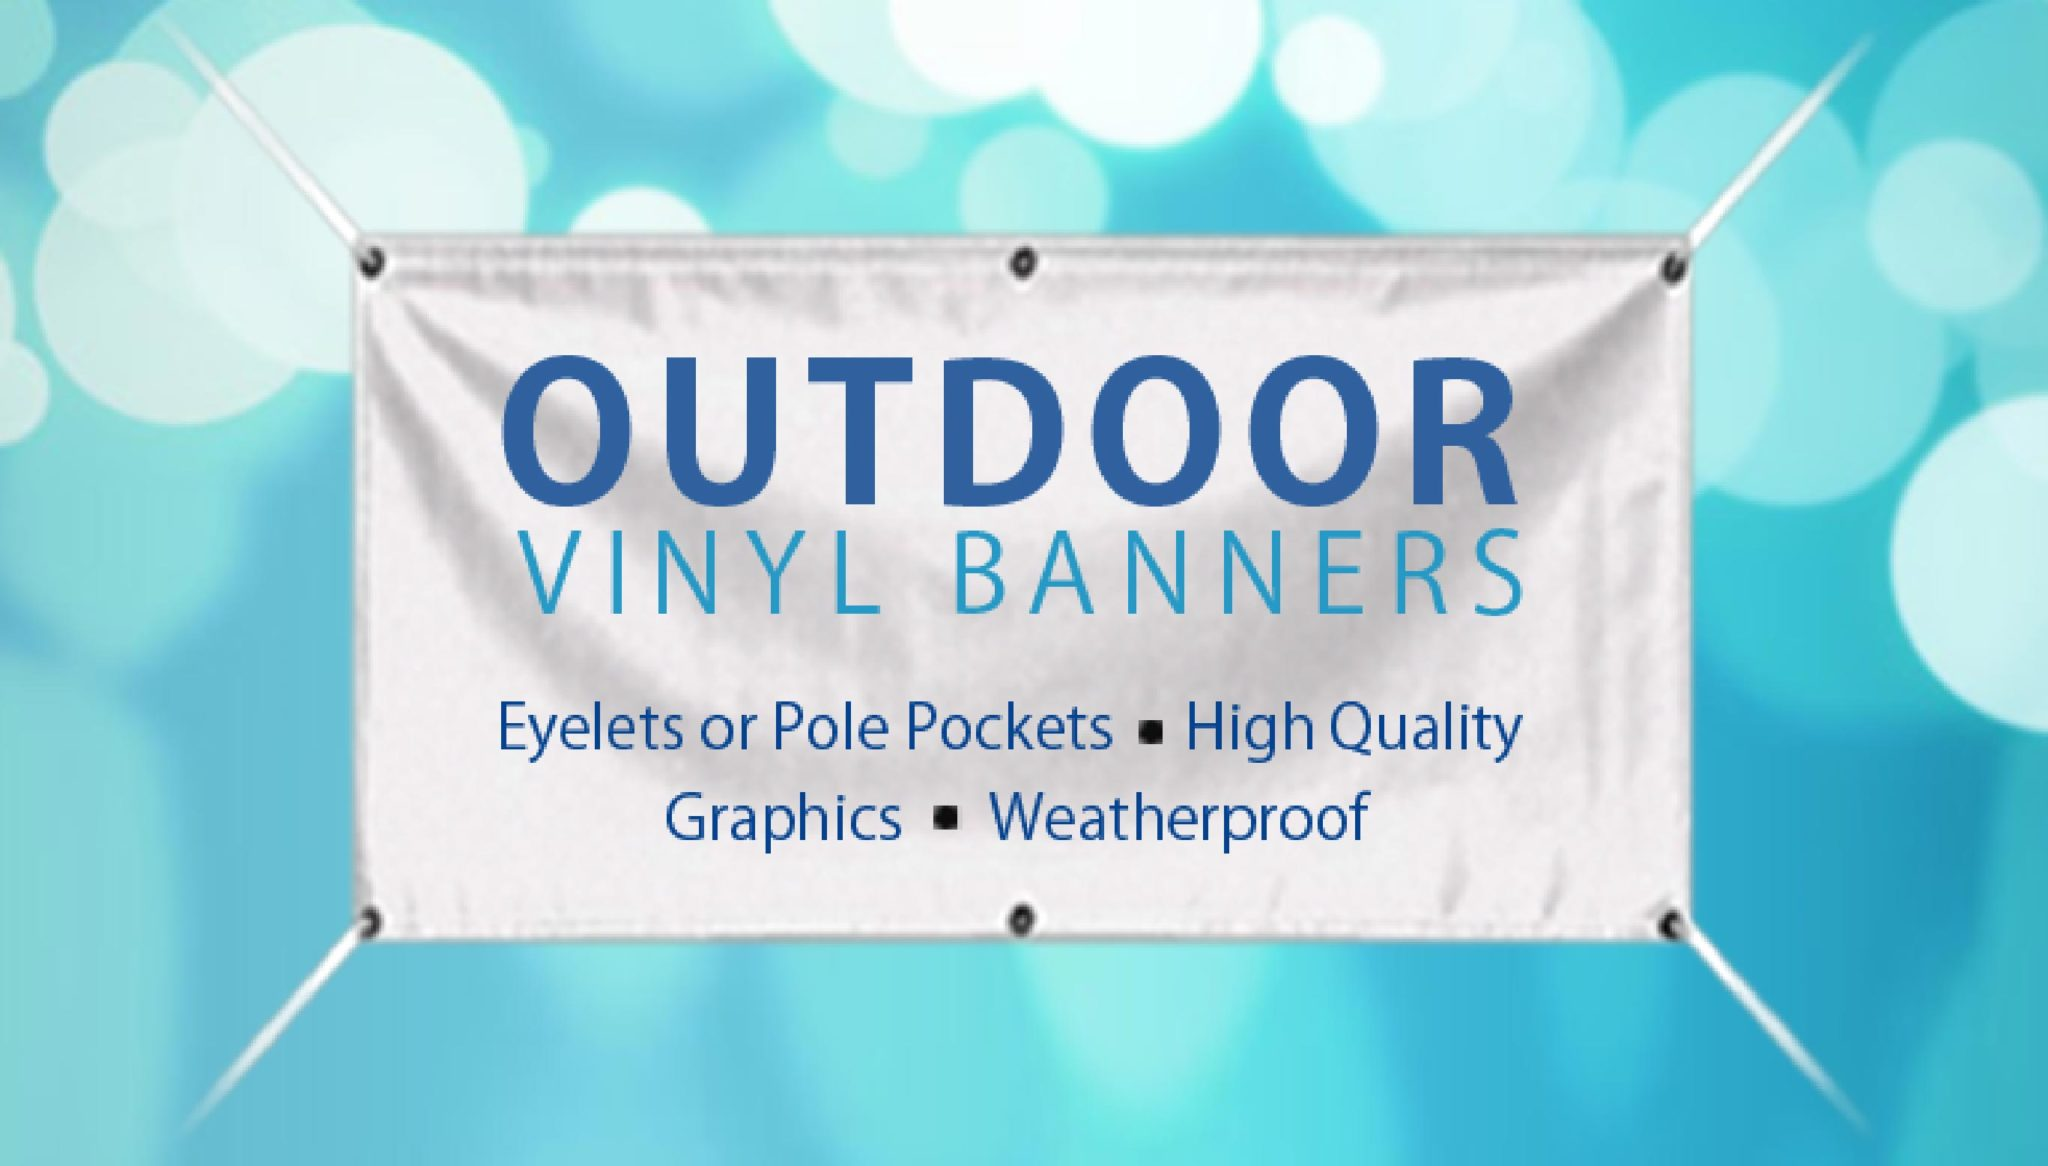 outdoor banners ireland crafted by our expert design team